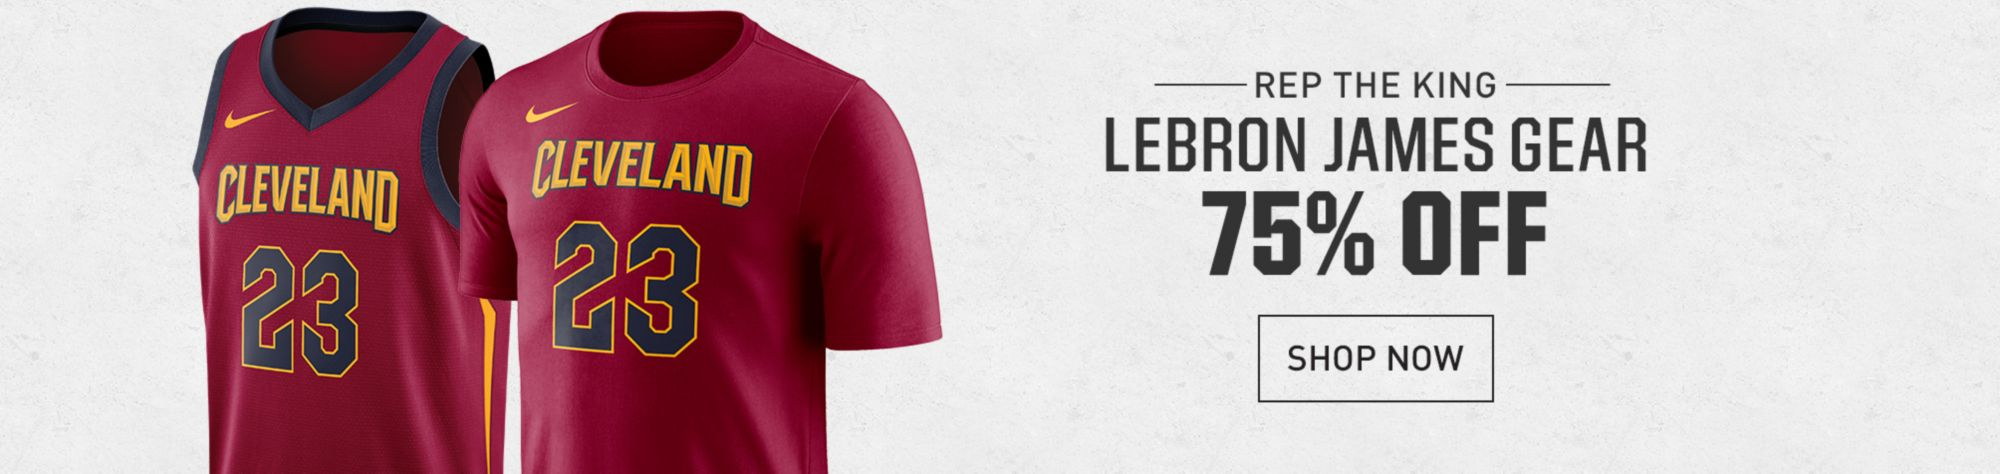 75% Off LeBron James Cavs Gear